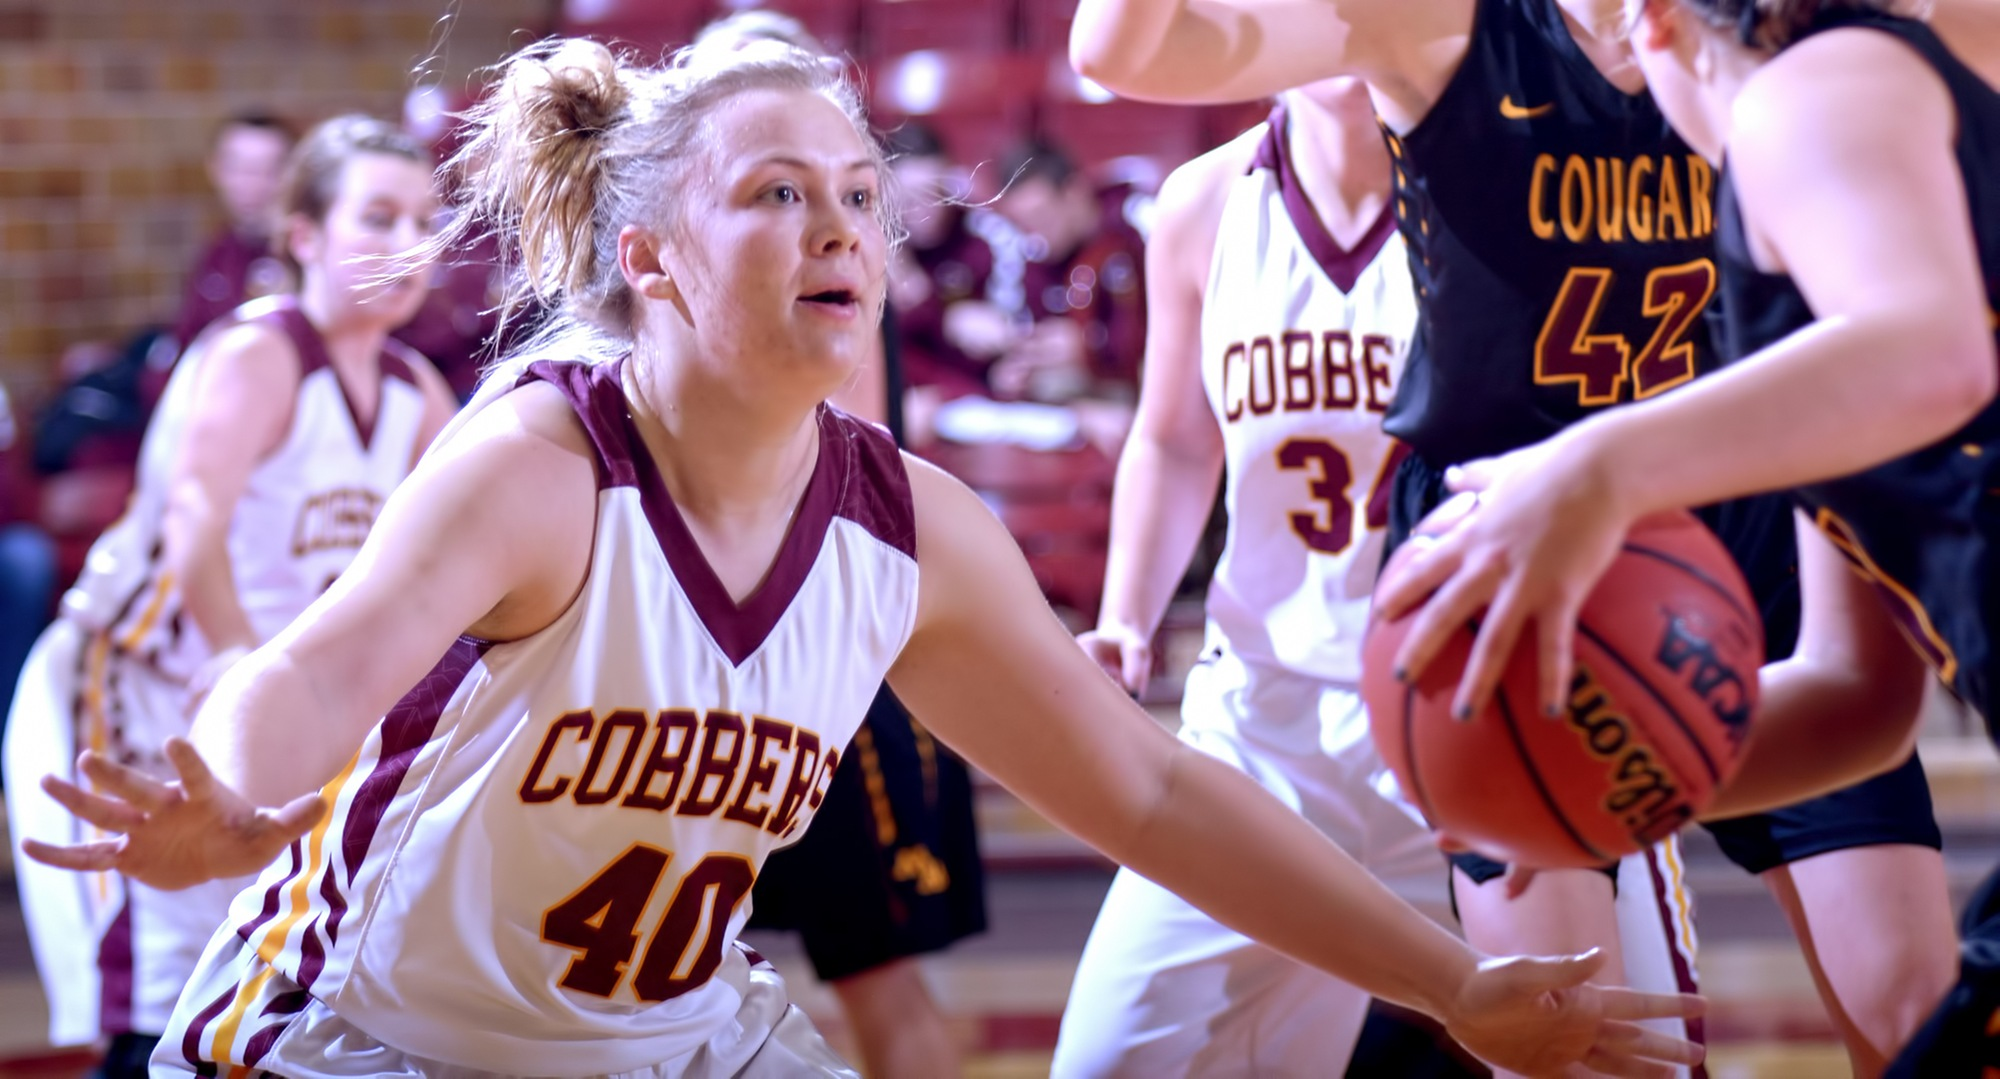 Mira Ellefson scored a career-high 16 points in the Cobbers' game against Chapman.